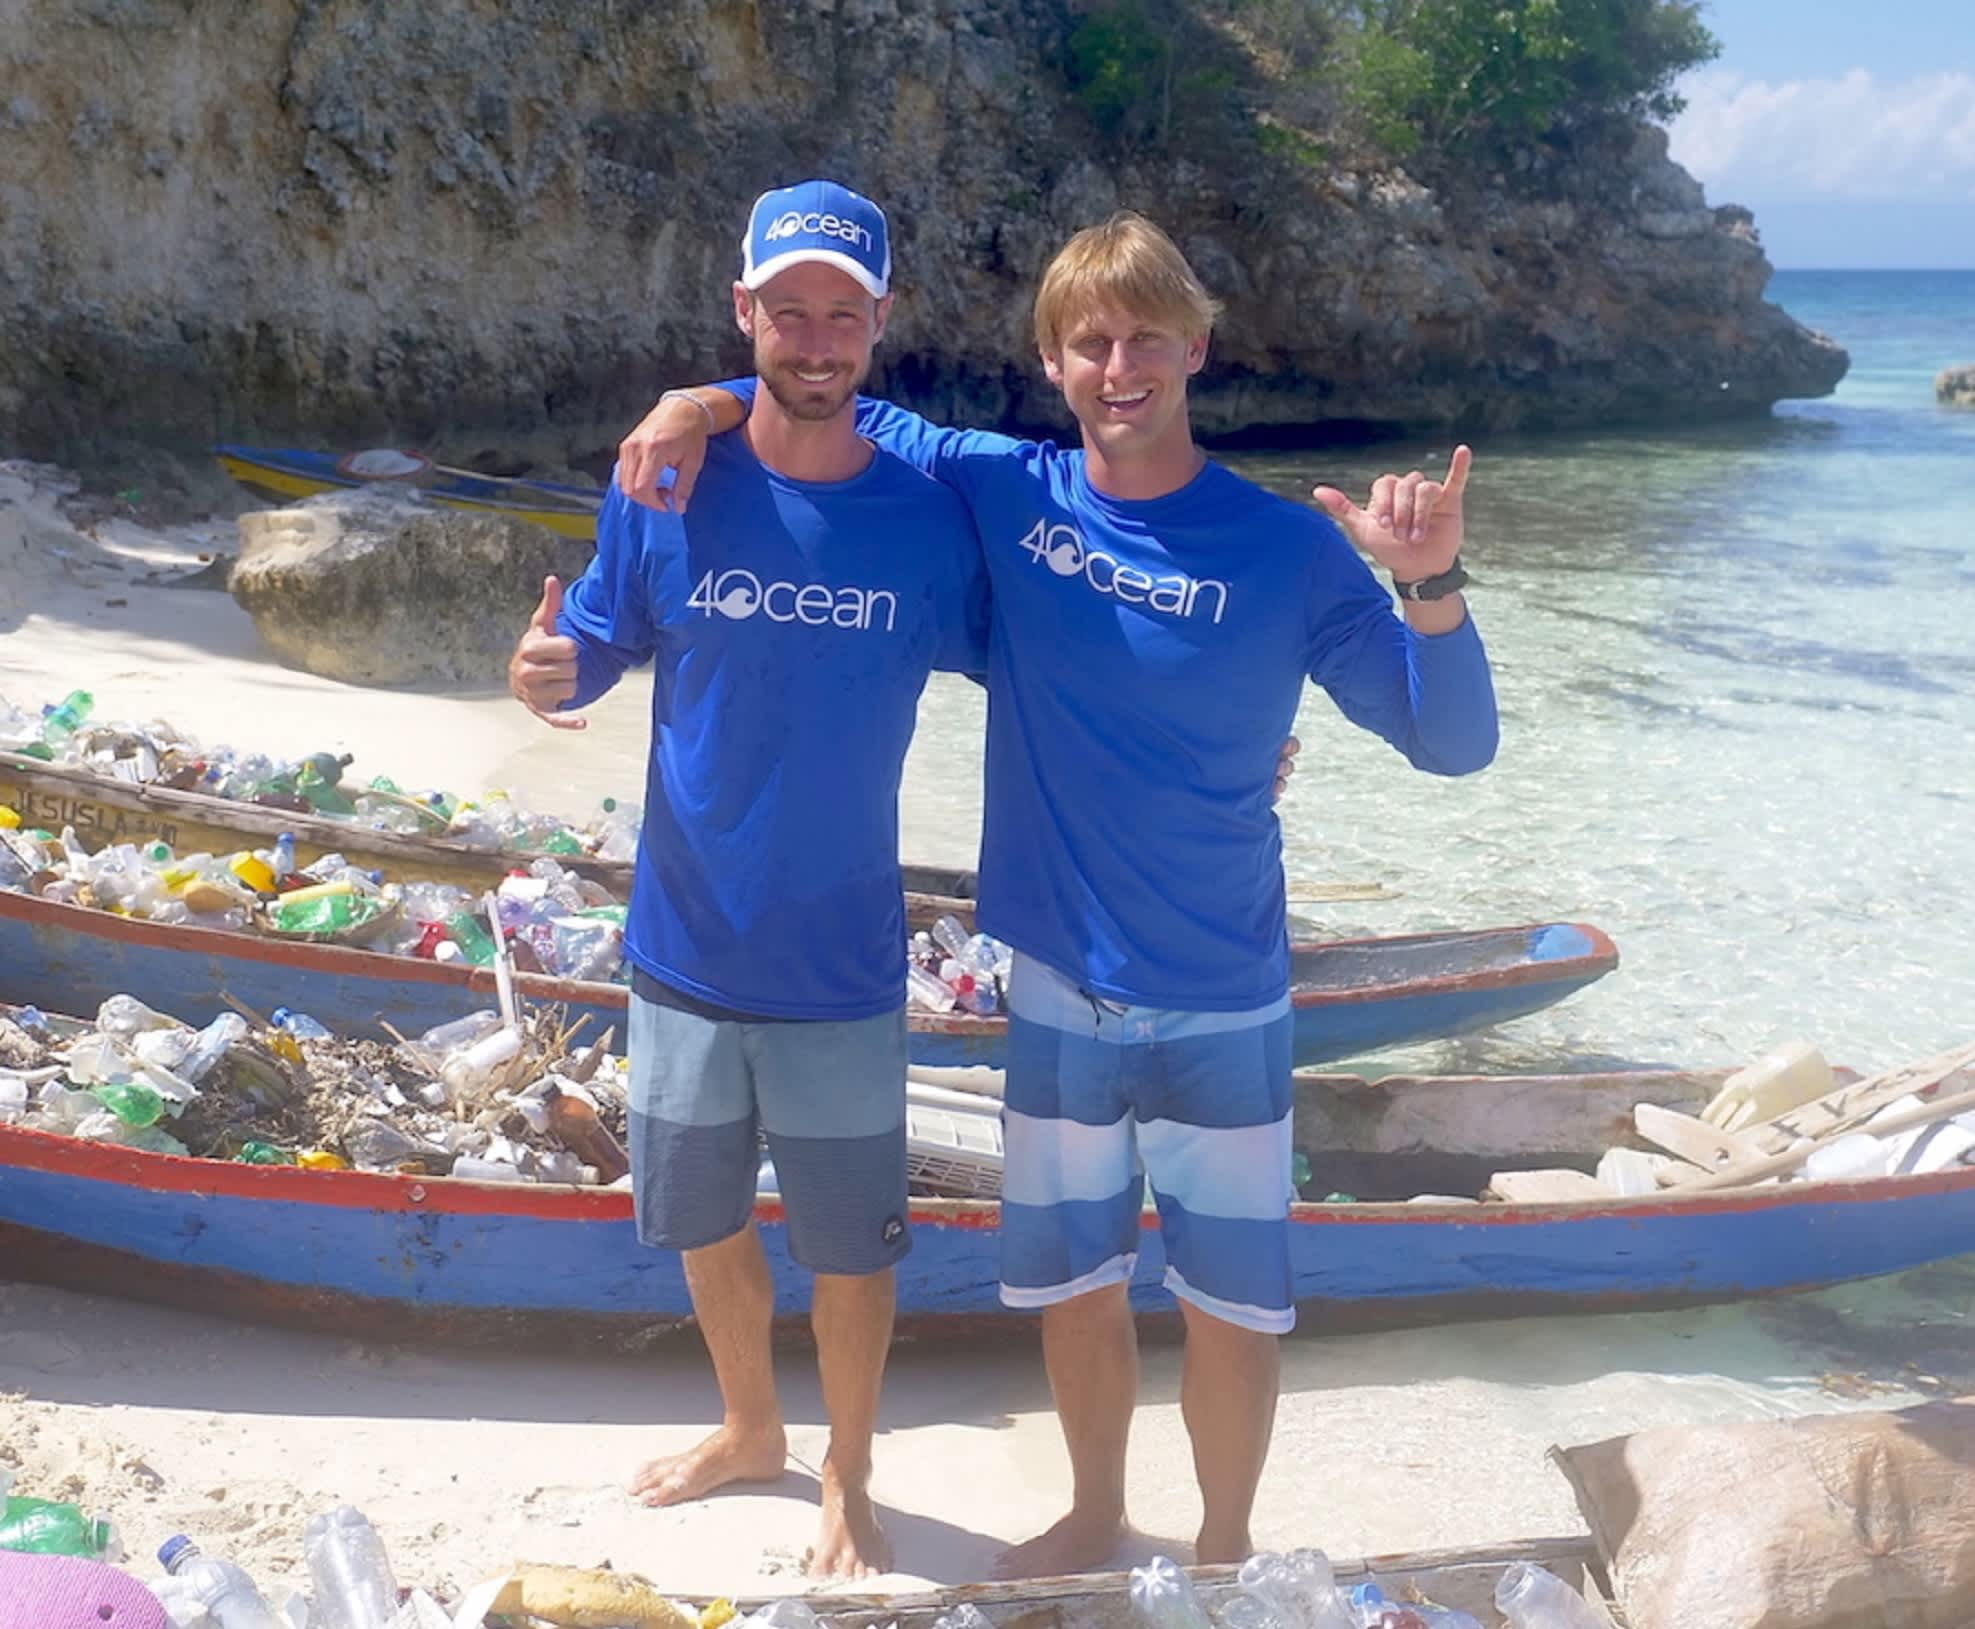 22f9a927e7 These 20-something surfers started a company that's pulled 1 million pounds  of garbage out of the ocean